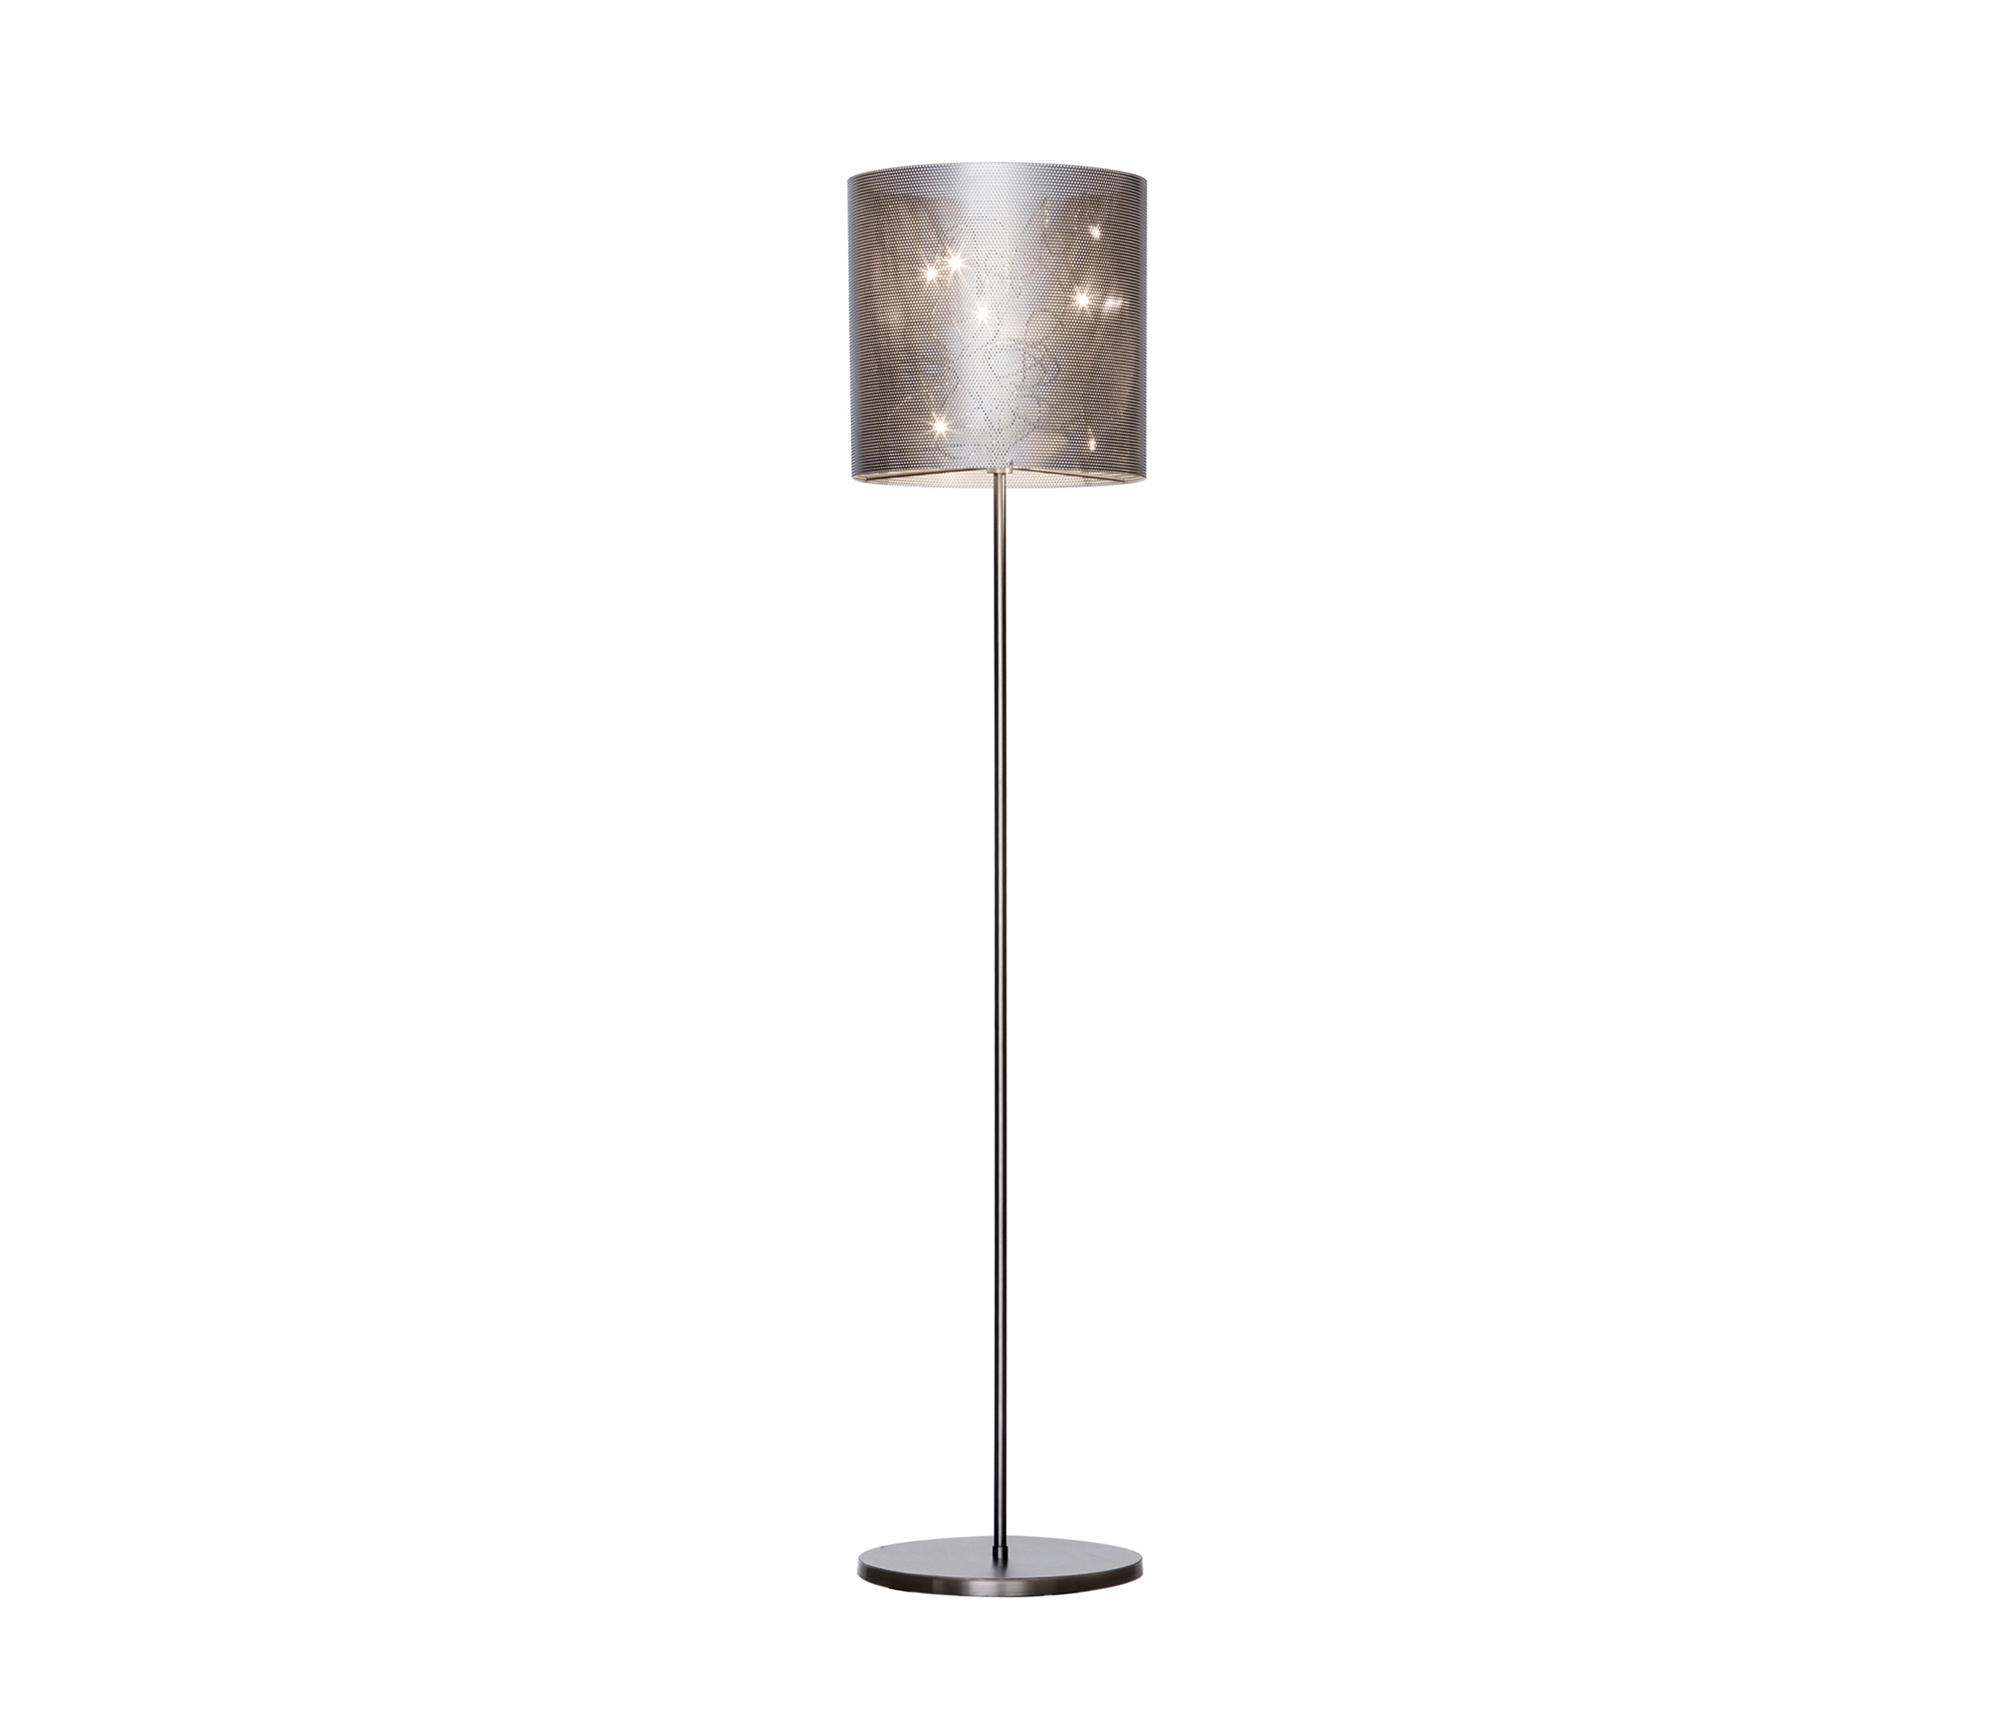 Nice floor lamp 7 general lighting from harco loor architonic nice floor lamp 7 by harco loor general lighting aloadofball Gallery